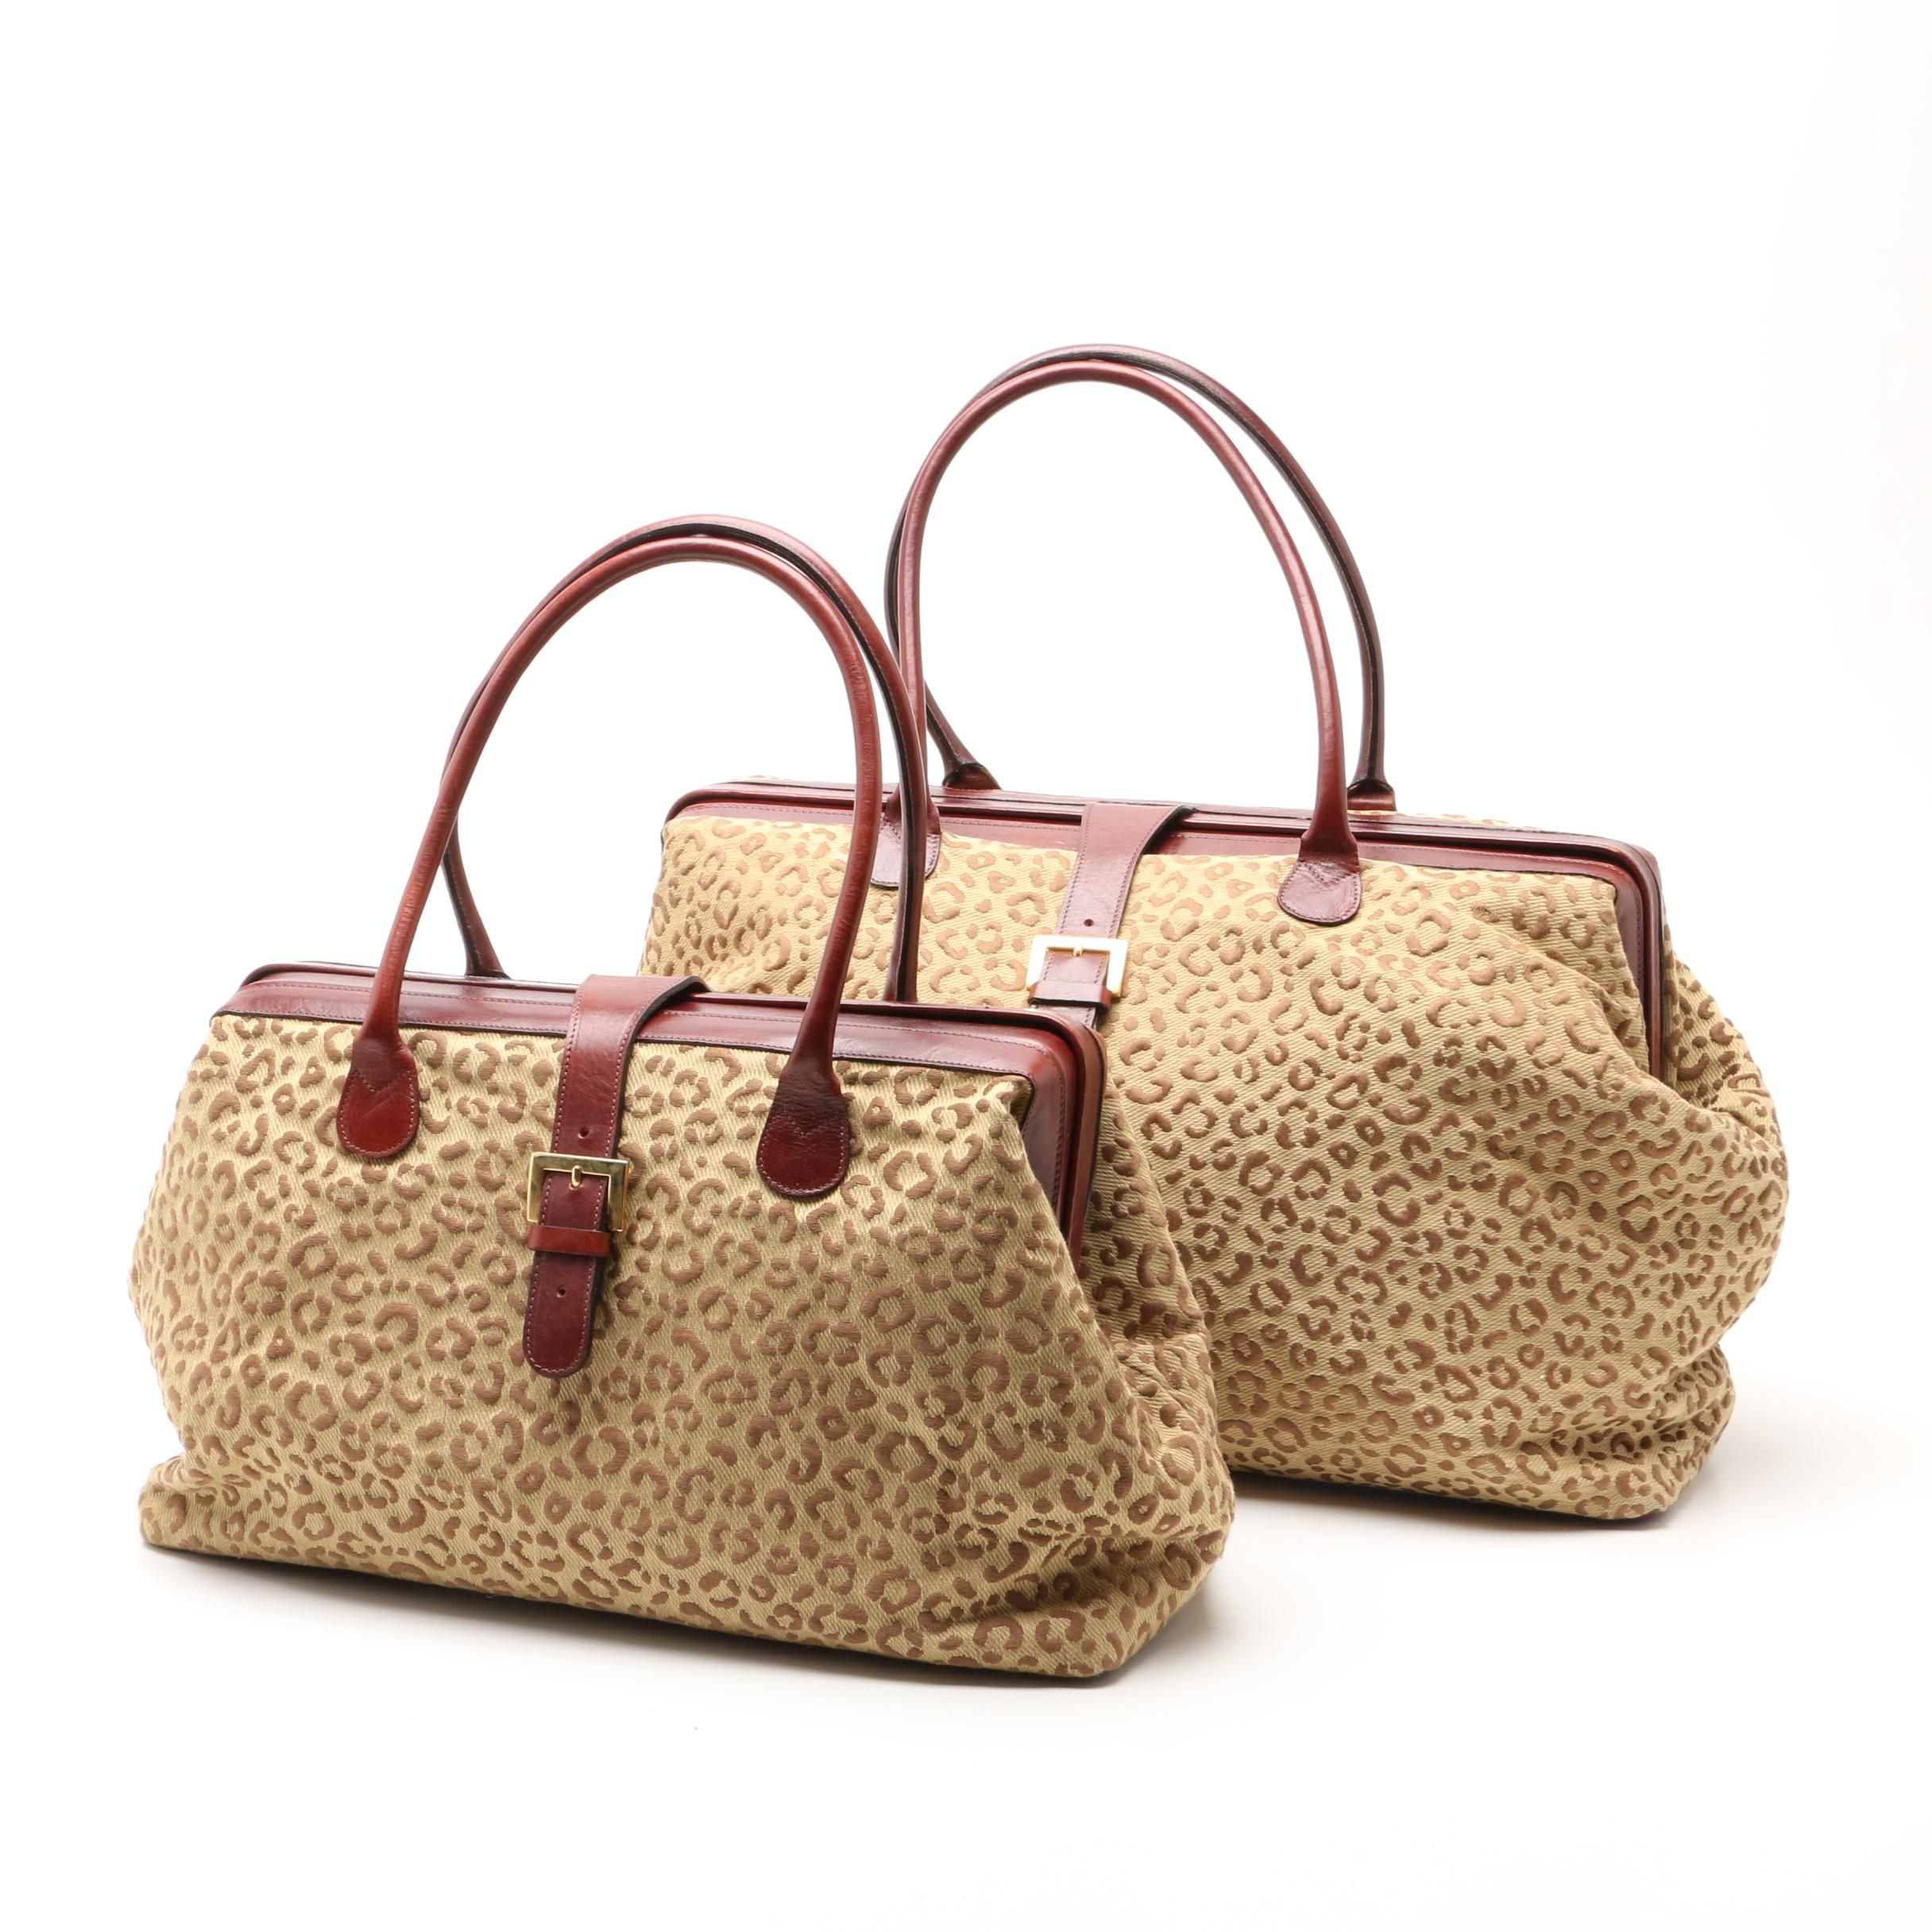 DeRestivo Cheetah Print Totes with Leather Trim